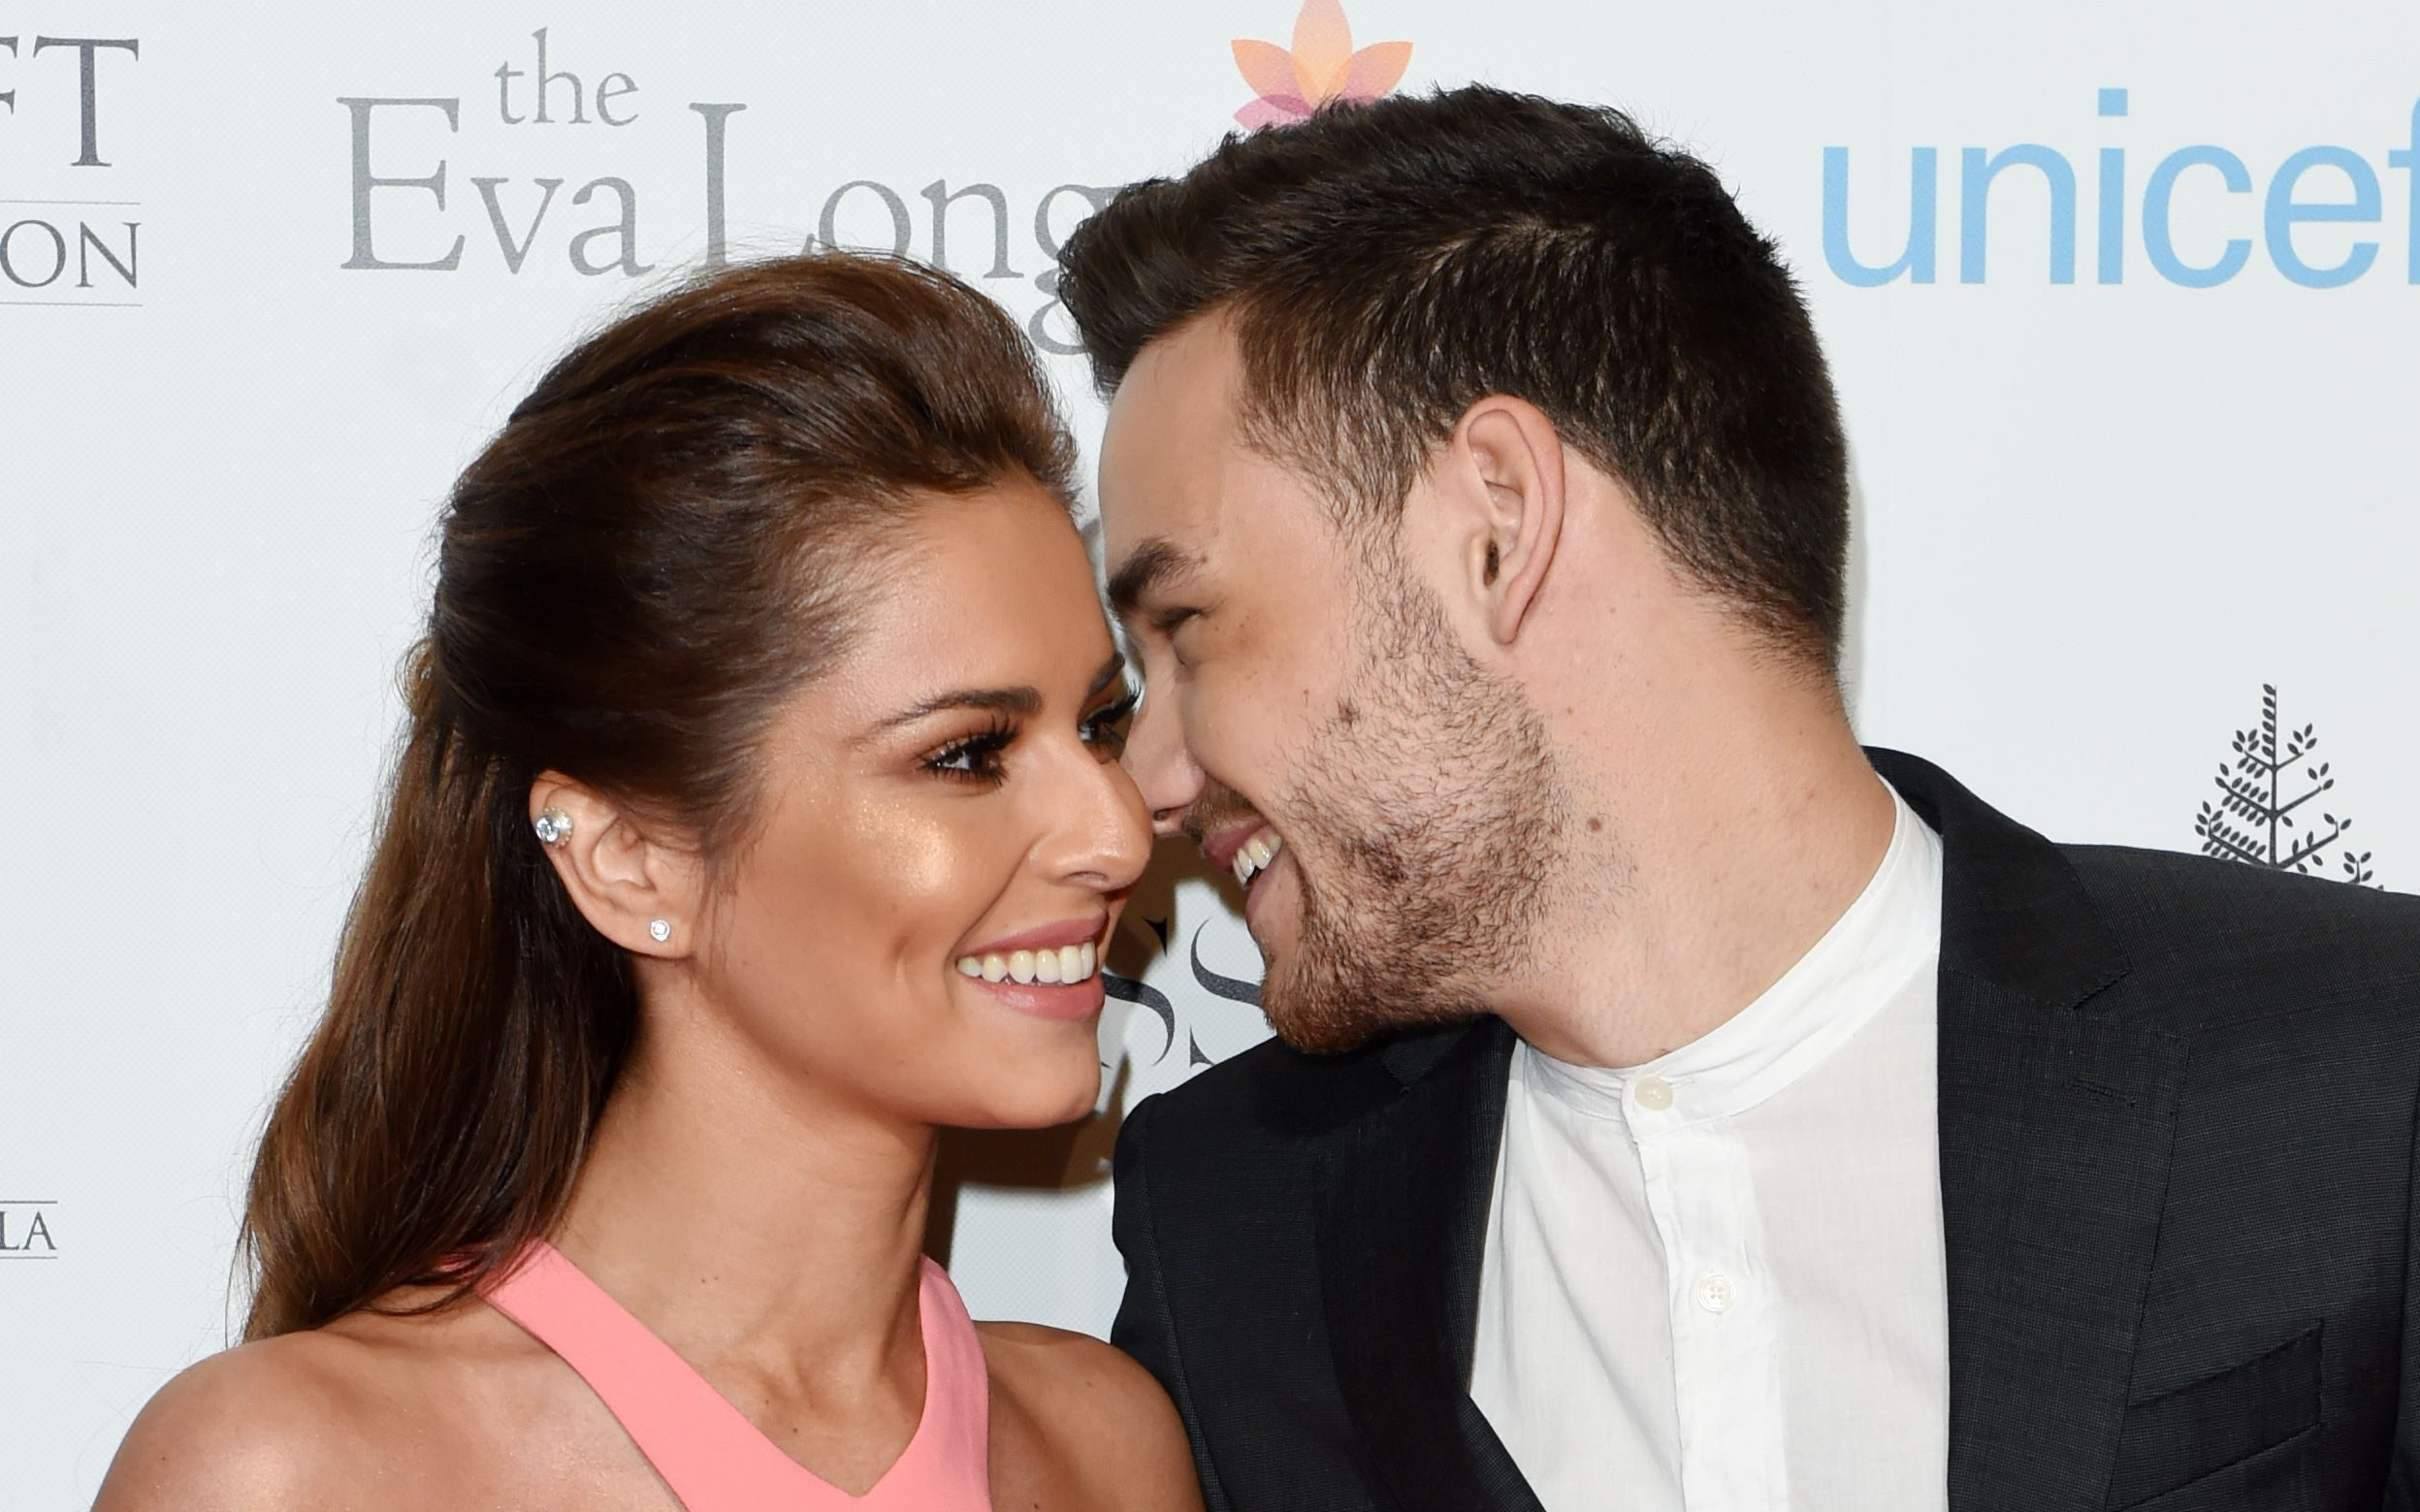 The Cheryl and Liam story: A timeline from when they met to their new baby